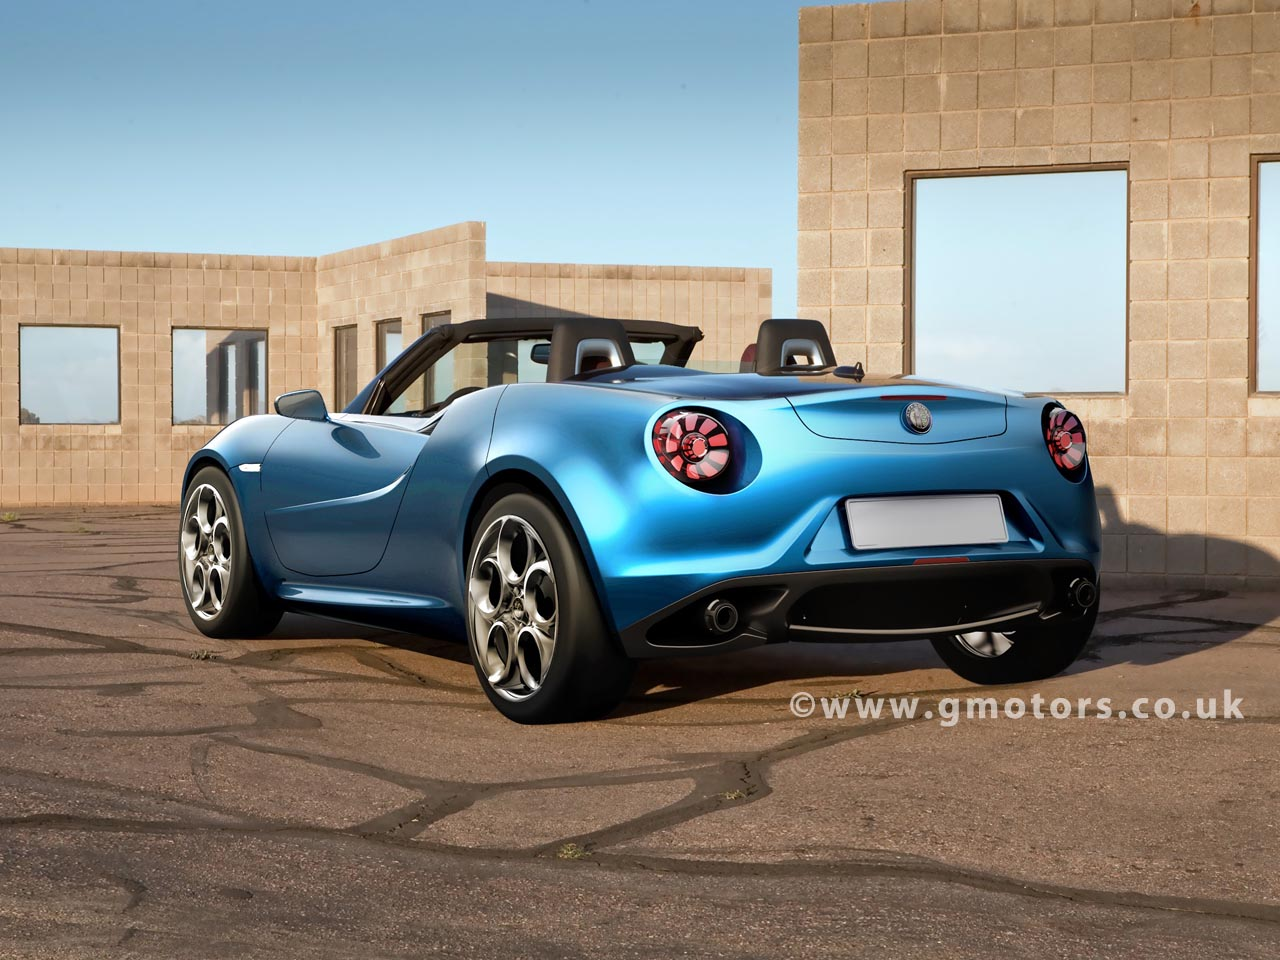 alfa romeo 4c spider render cuco 39 s blog. Black Bedroom Furniture Sets. Home Design Ideas